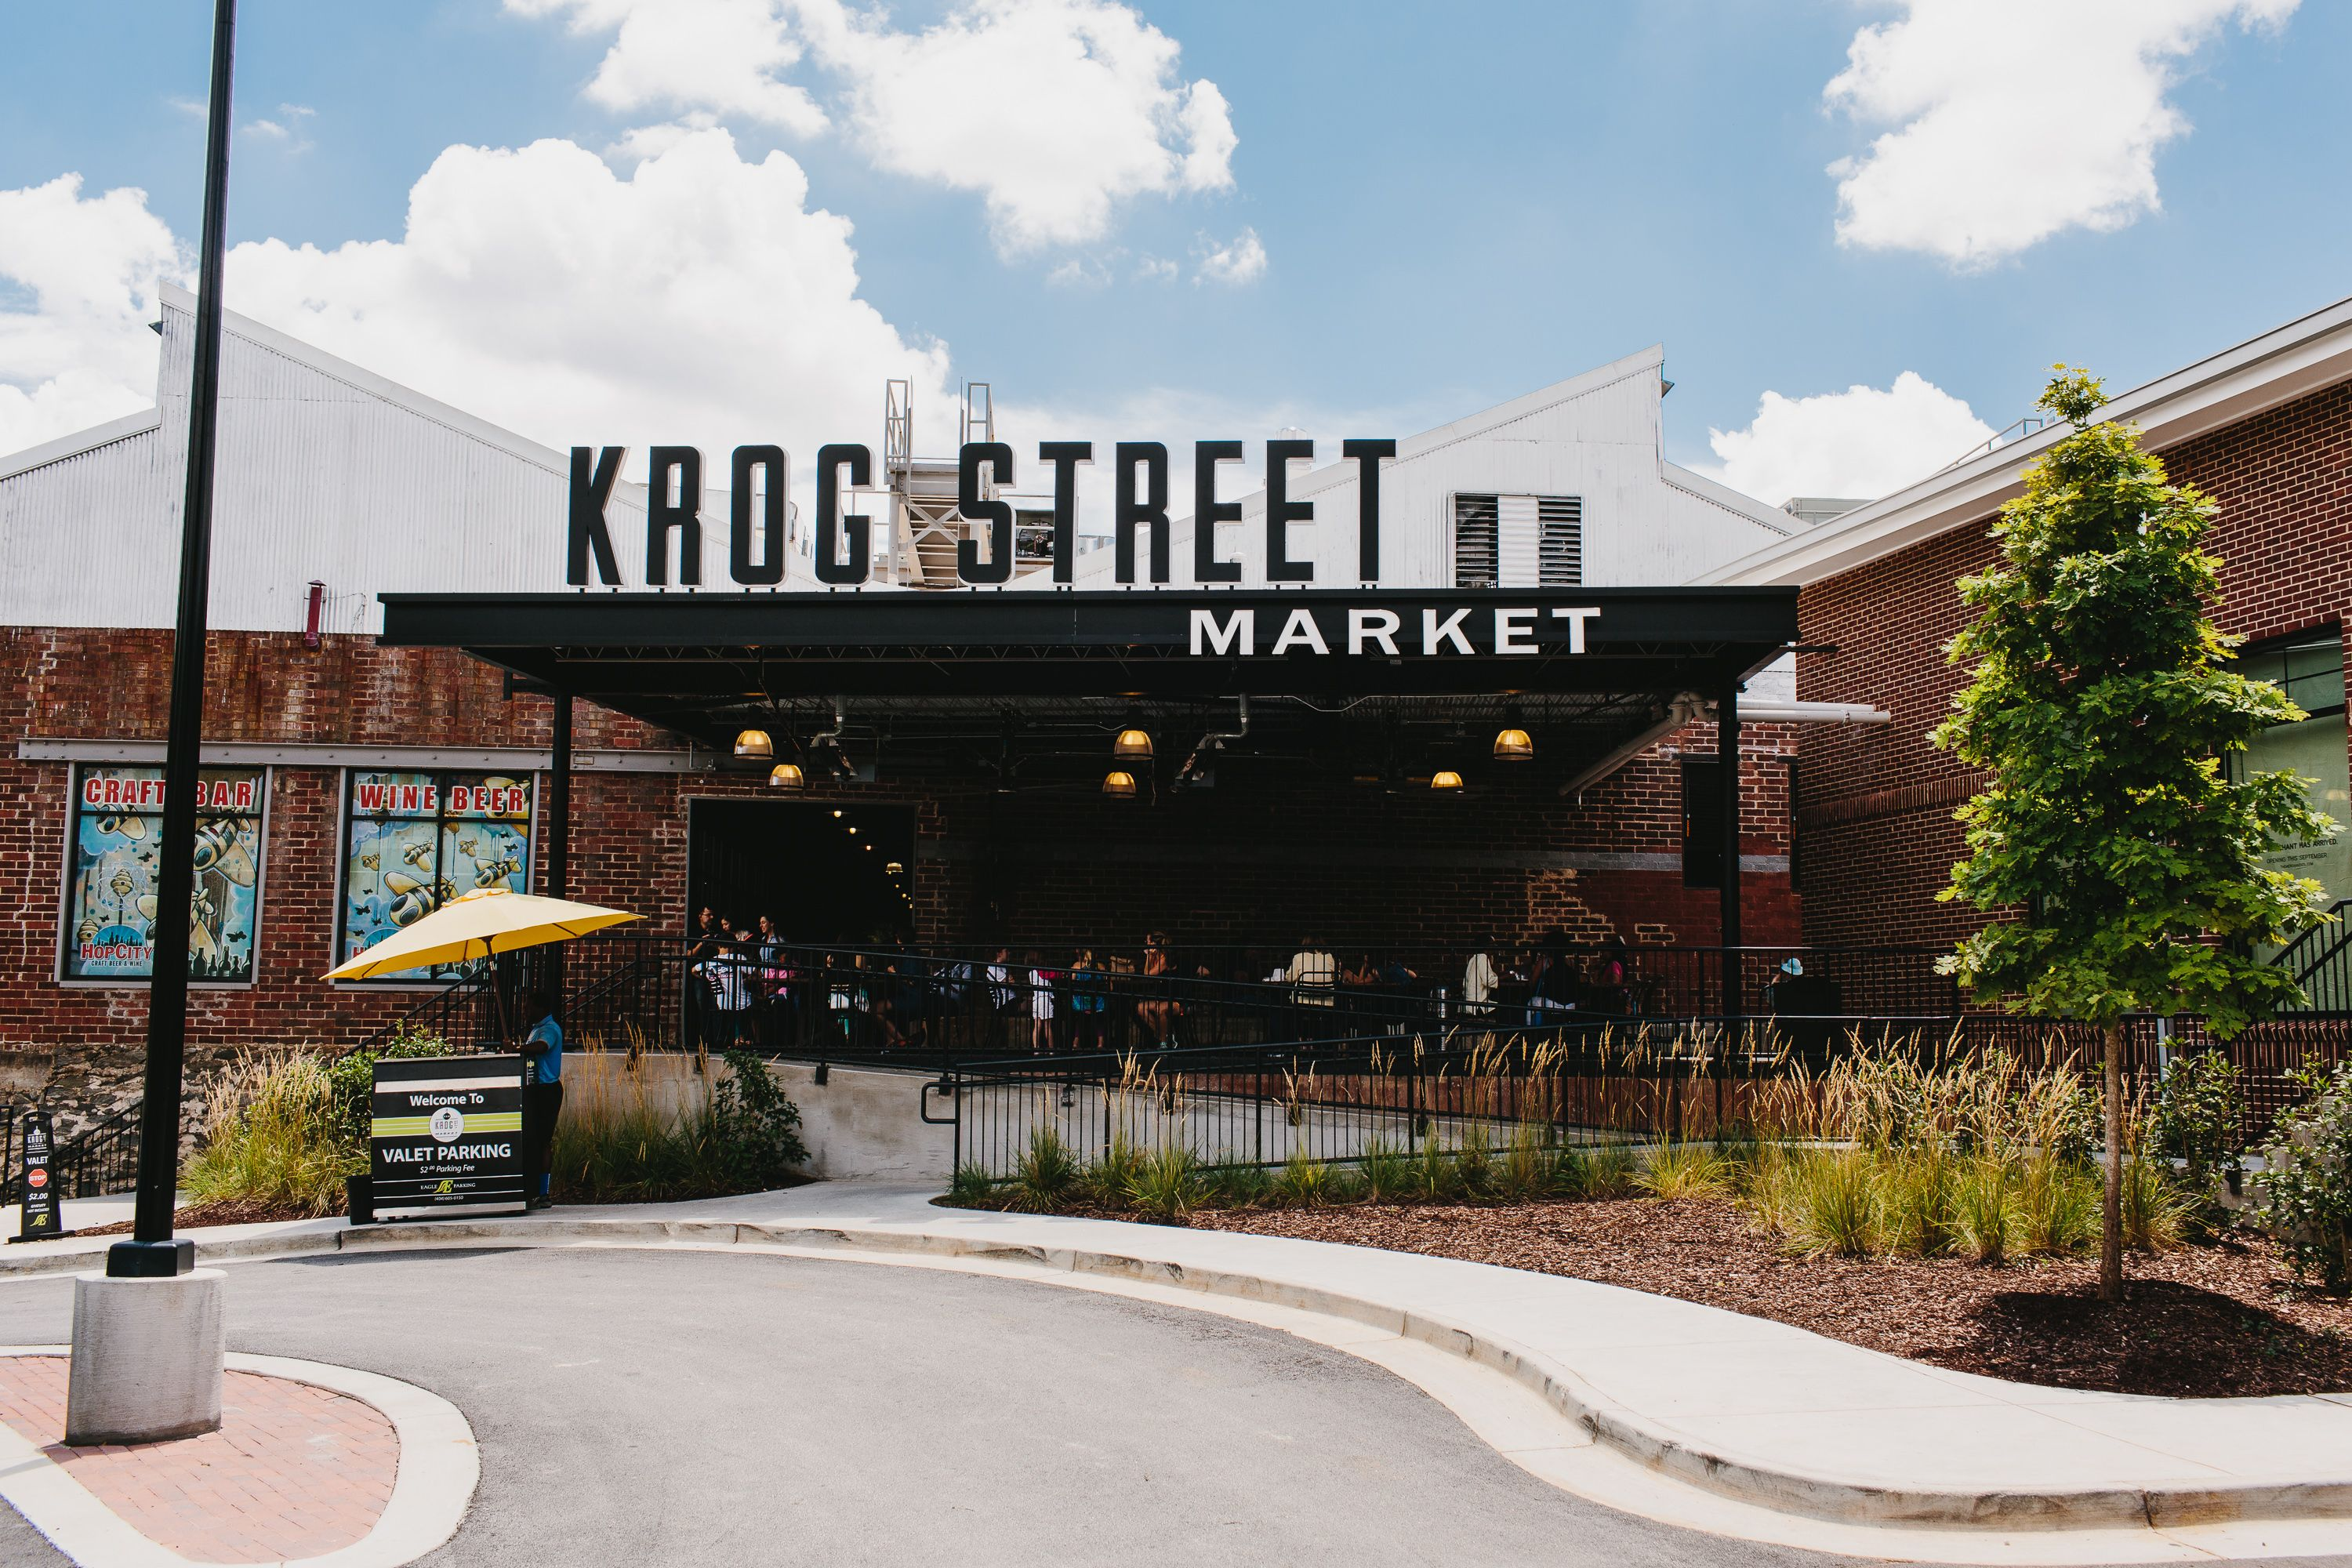 Krog Street Market Hasnt Been Opened For That Long But Its Definitely Not Going Anywhere